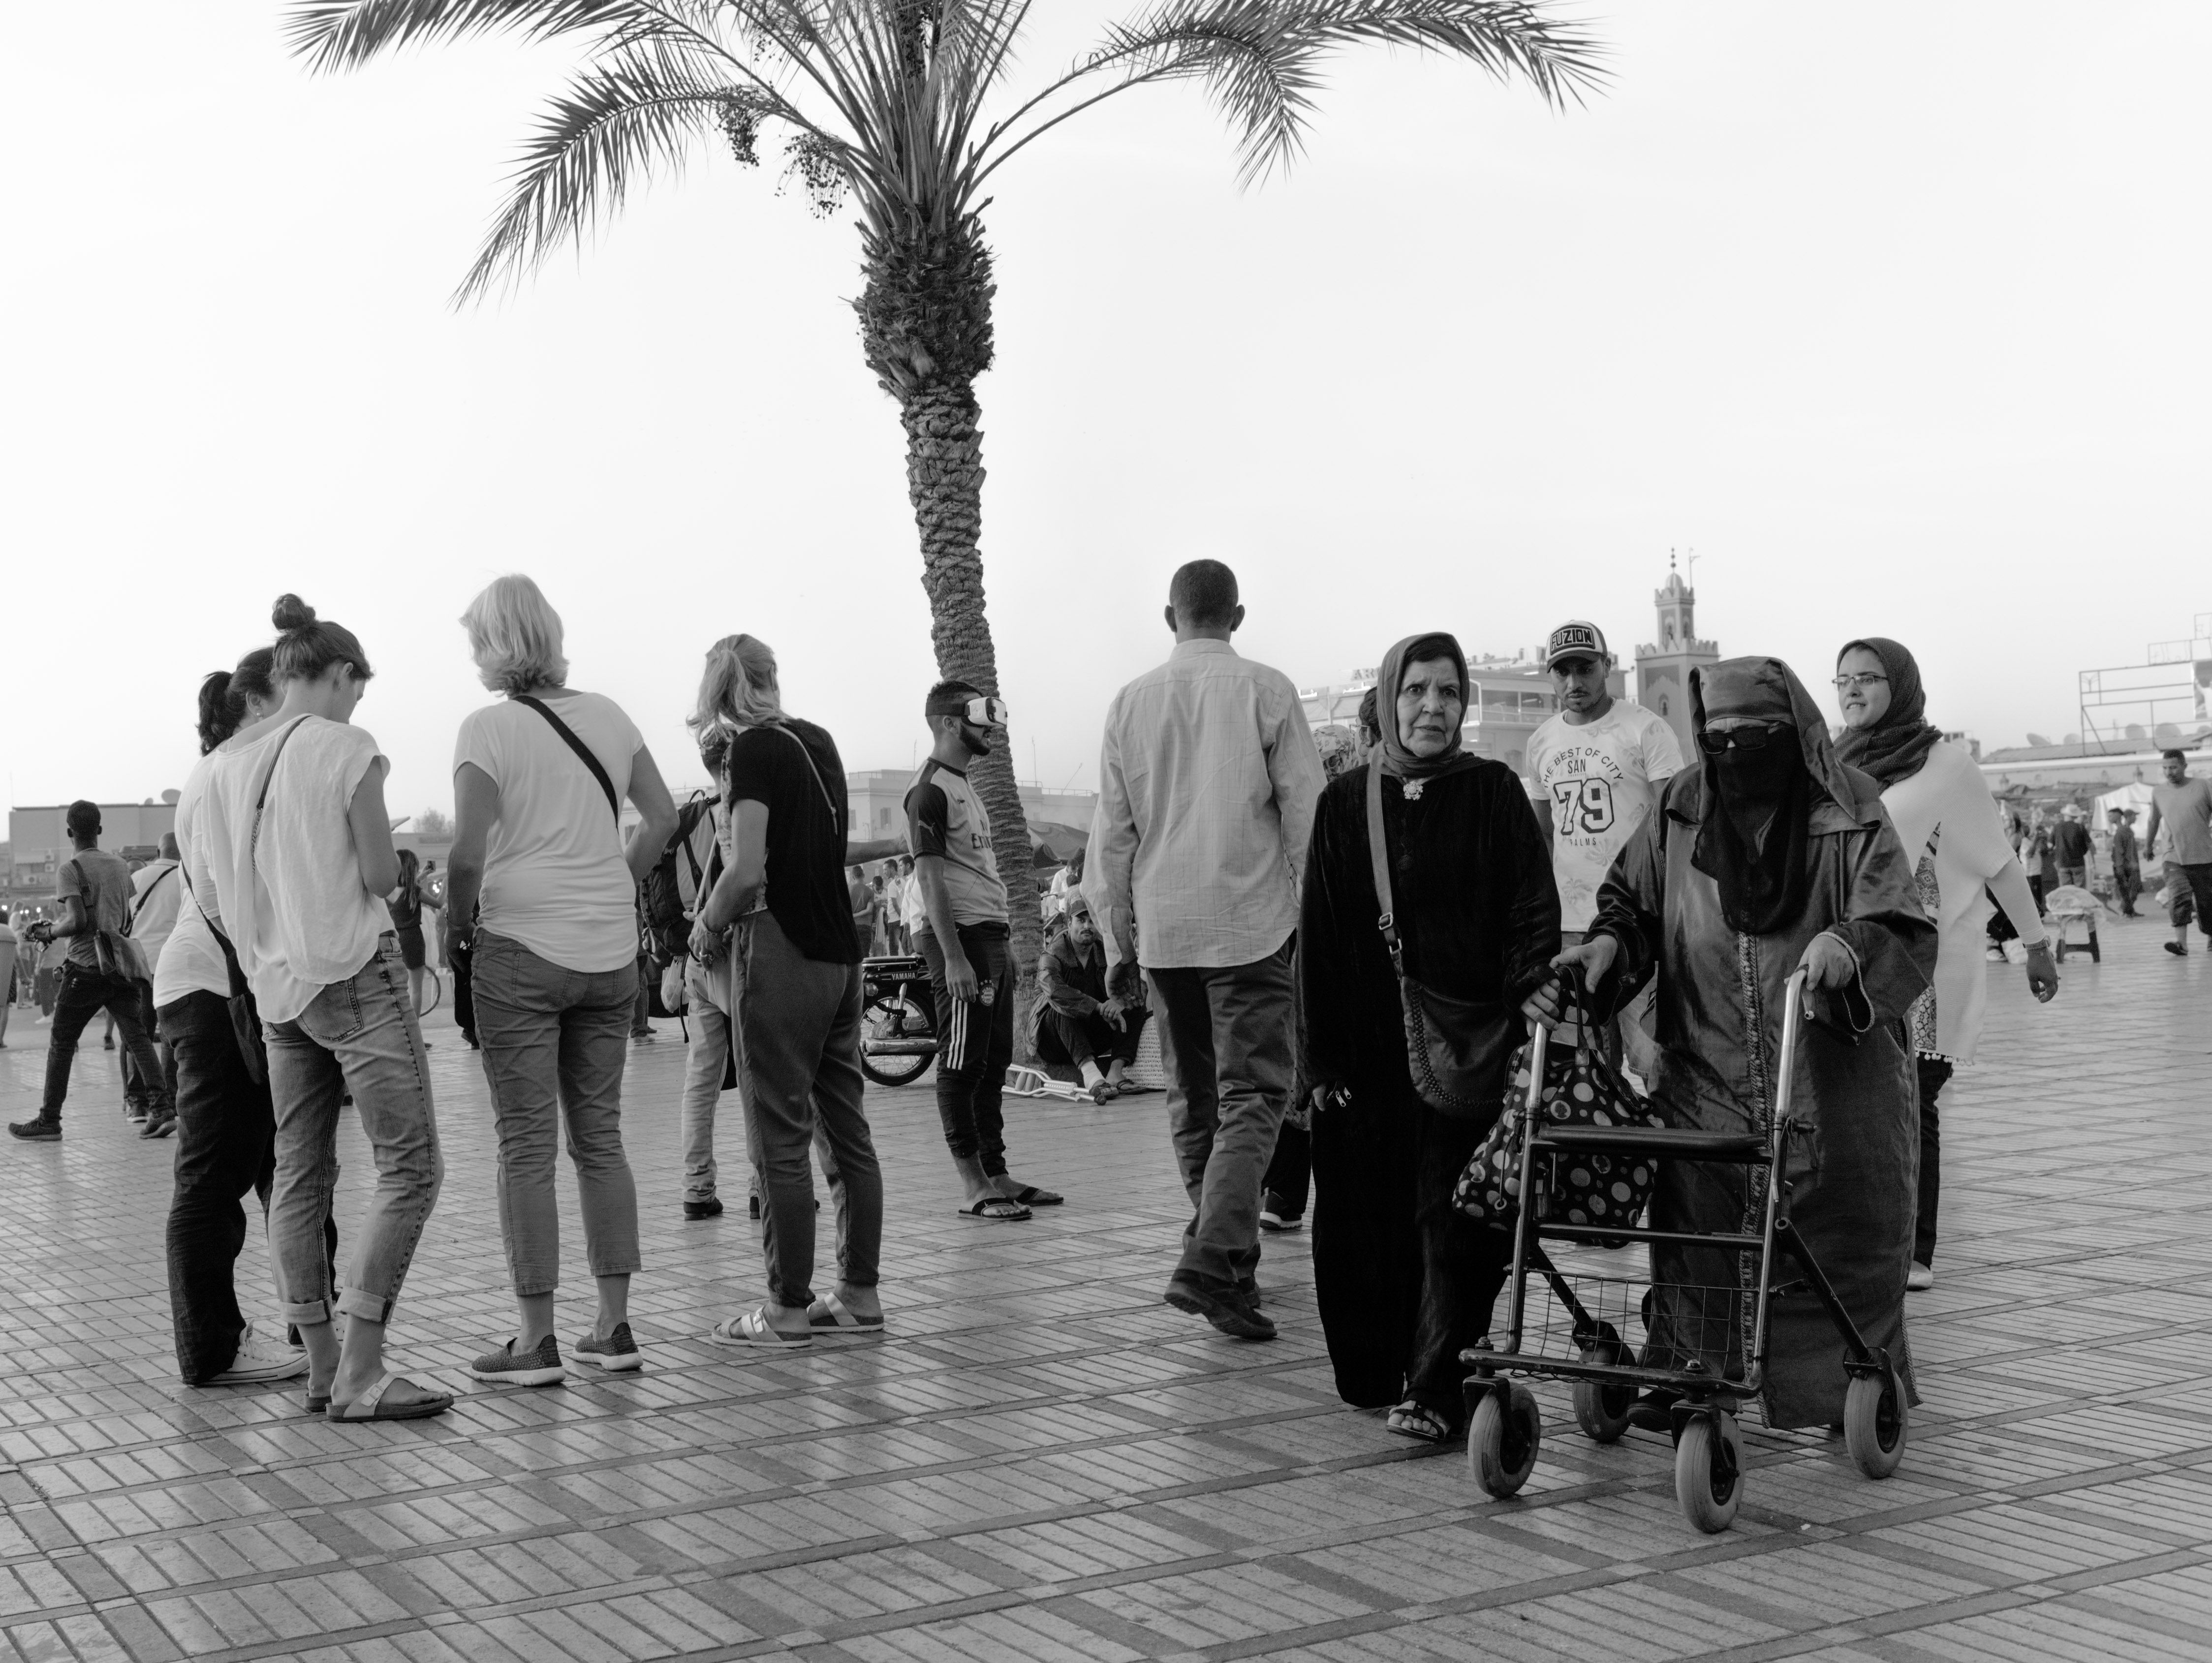 Meetings in Marrakech at Marrakech-Medina (Marrakesh, Morocco) with Leica M Monochrom (Leica Summilux-M 35mm f/1.4 ASPH.) by Magnus L Andersson (photography.anderssoneklund.se) at 2017-09-30 18:53:38